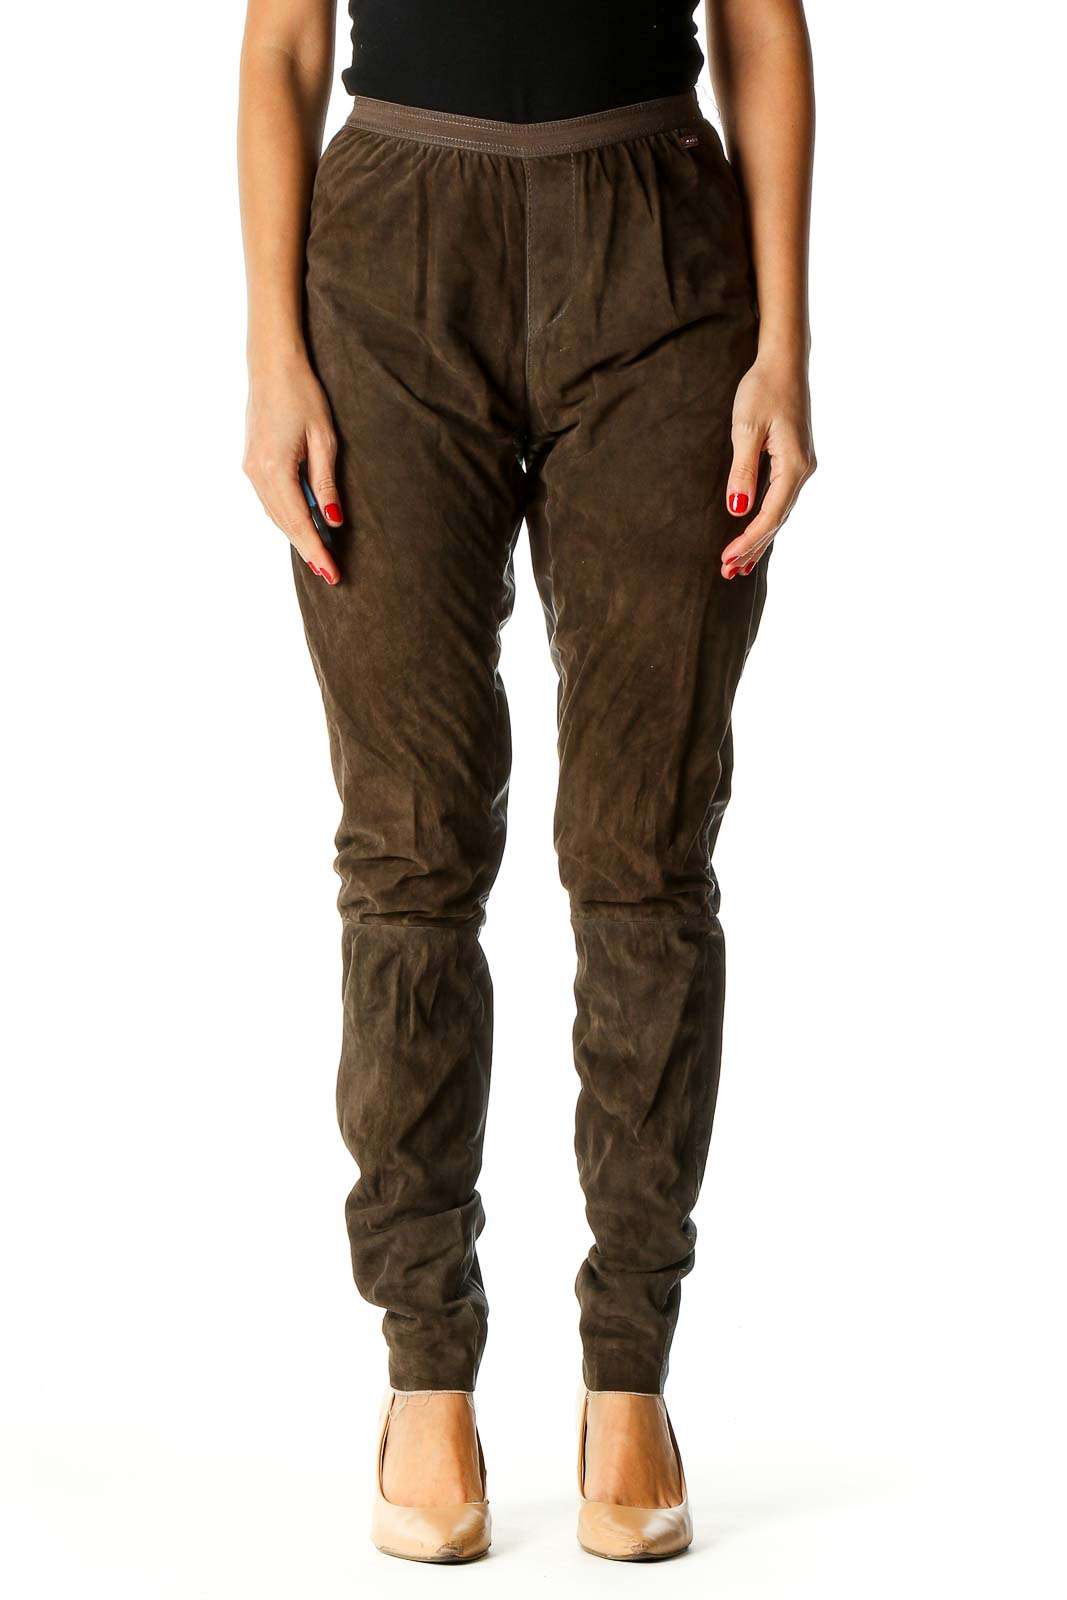 Brown Casual Cargos Pants Front